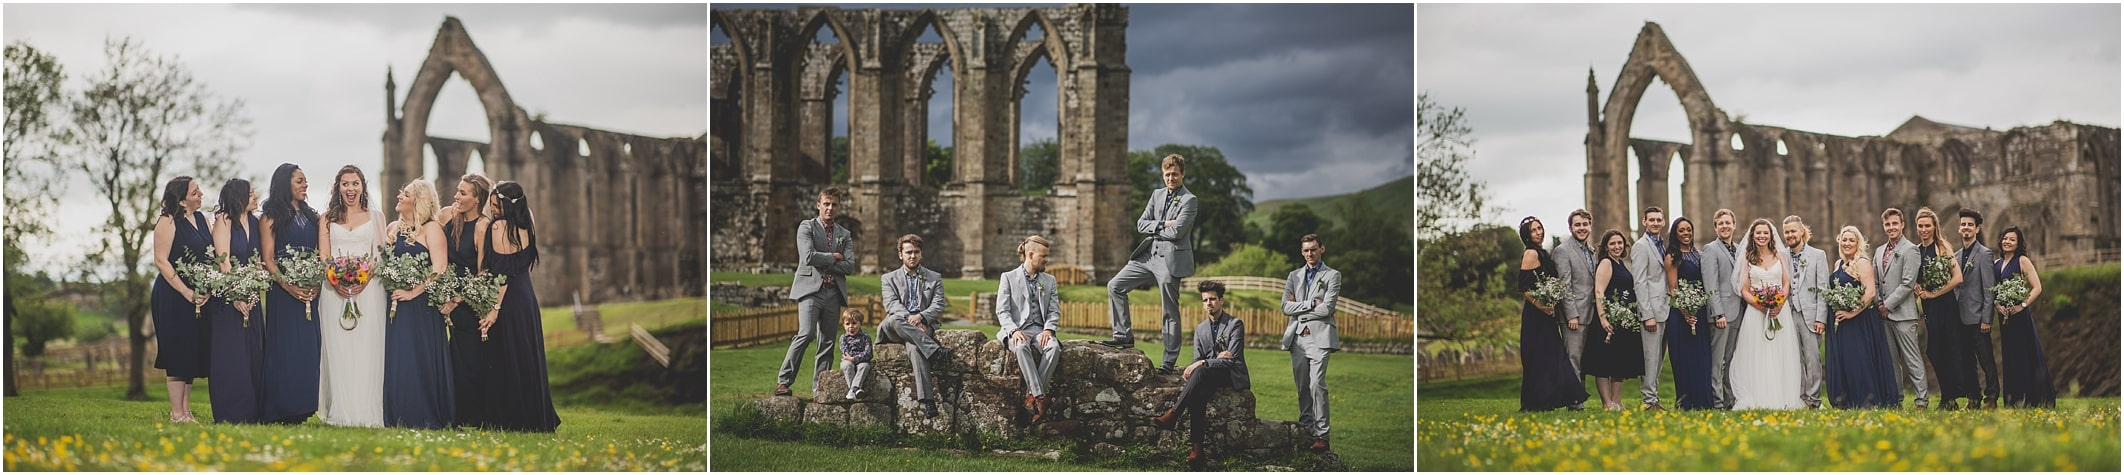 Wedding-Photography-West-Yorkshire